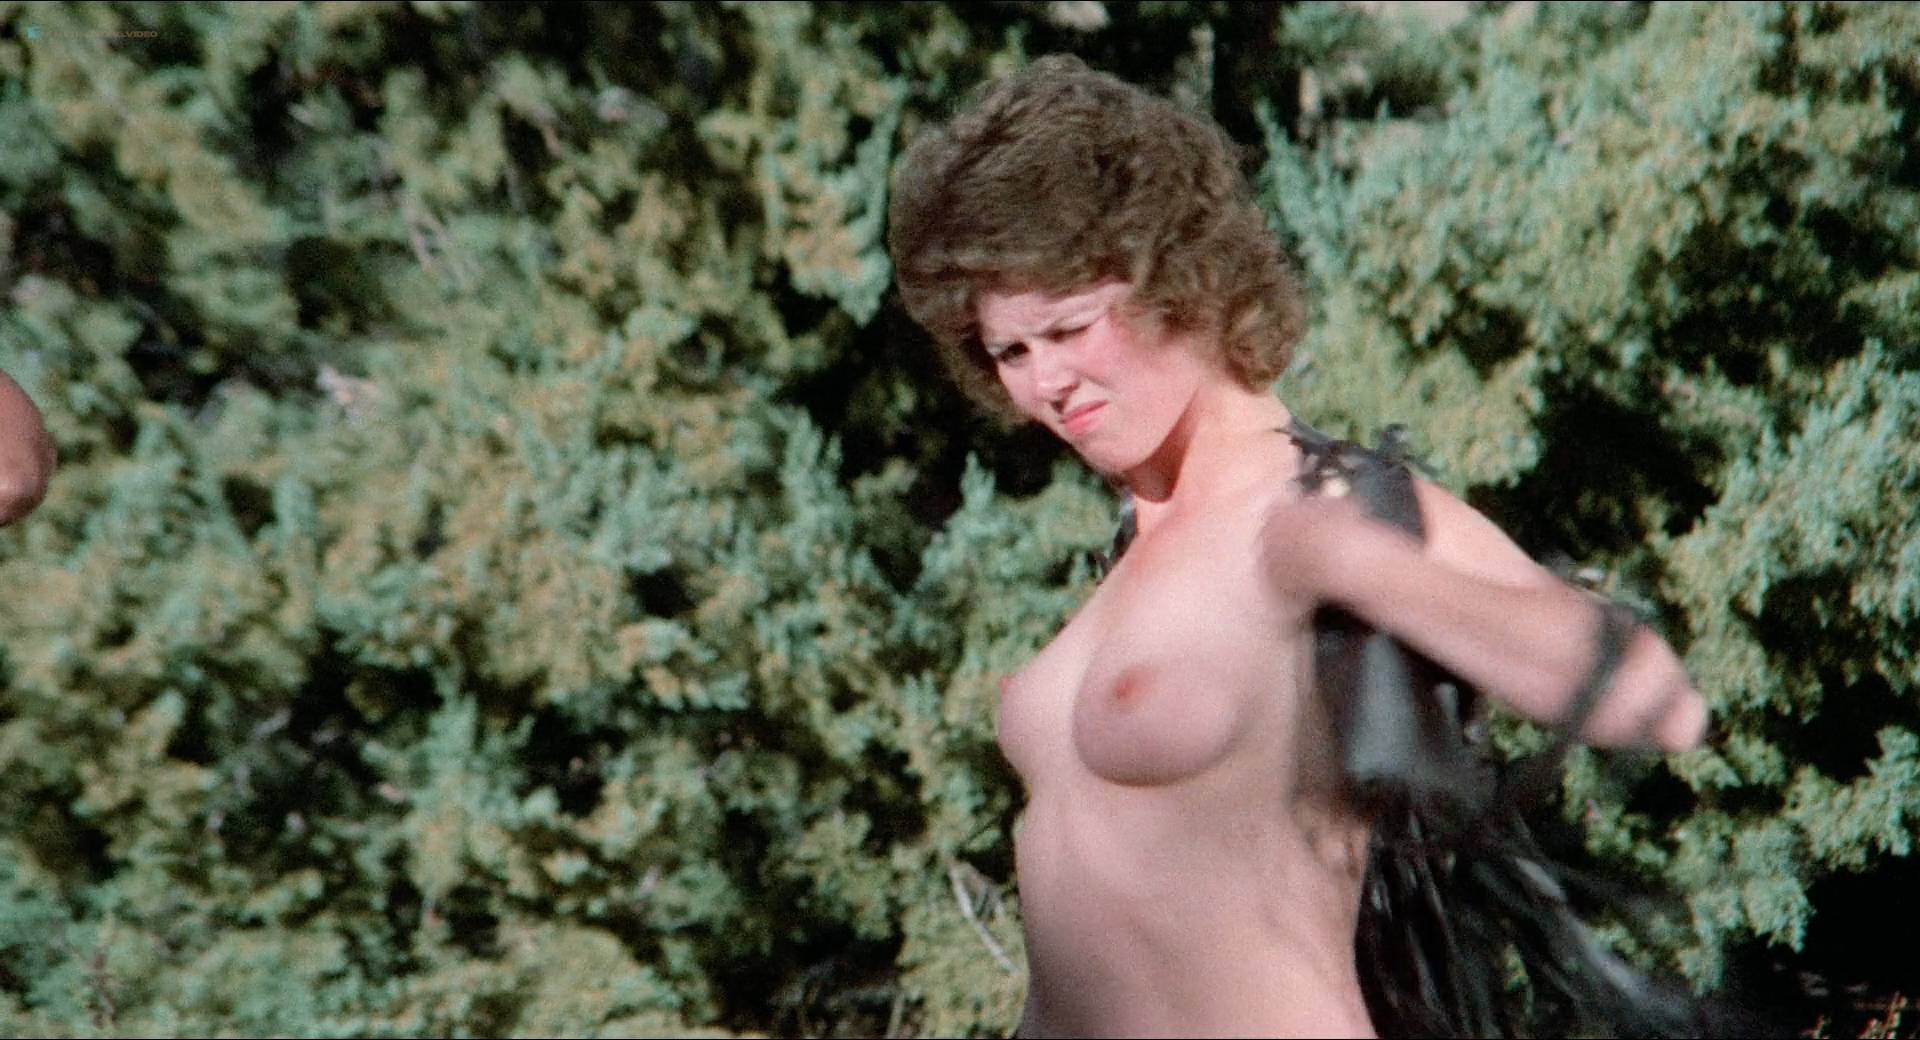 Margie Lanier nude bush sex Rene Bond and others all nude too - Fugitive Girls (1974) HD 1080p BluRay (7)